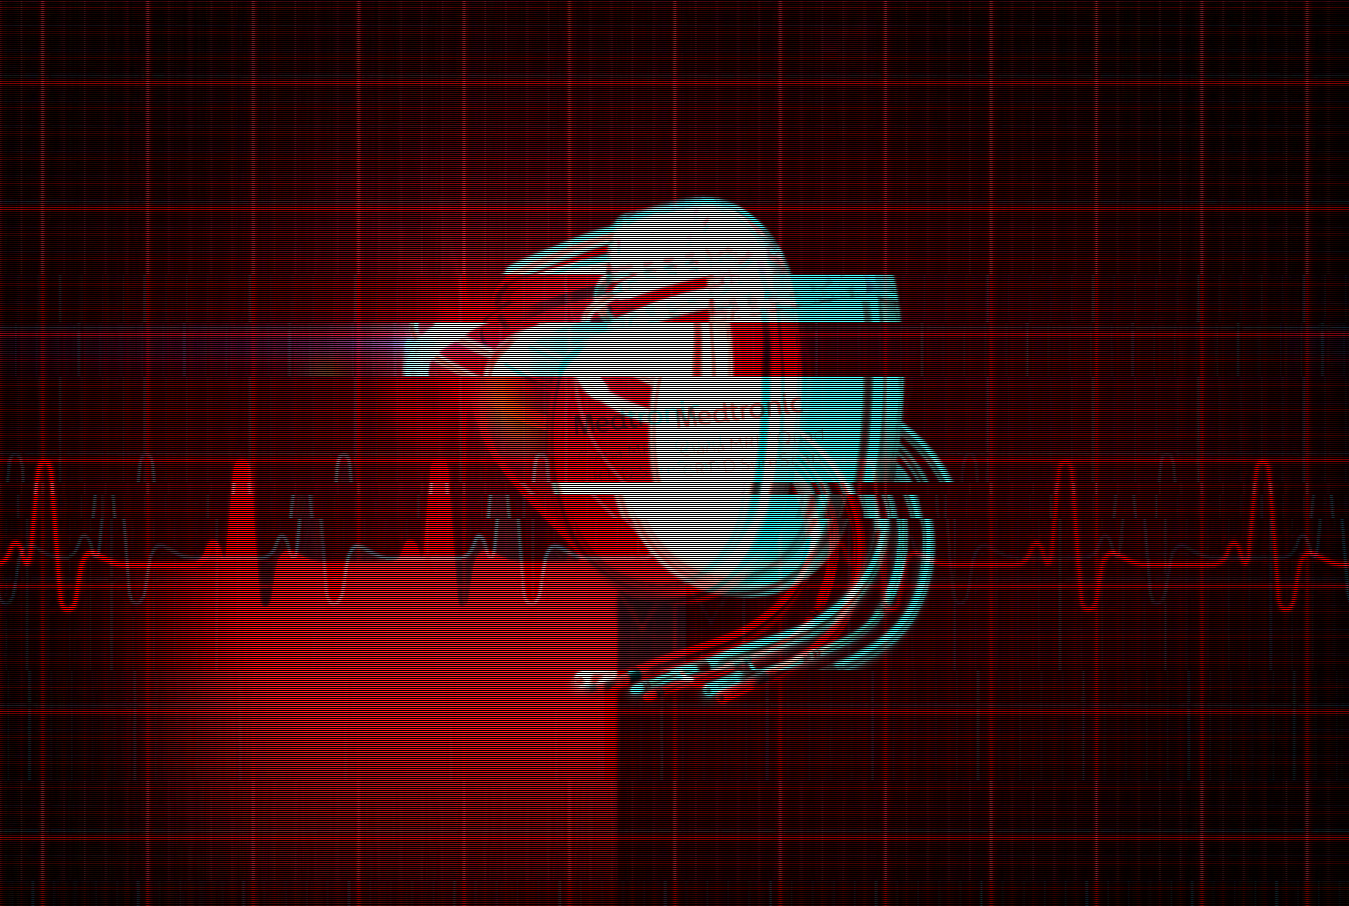 Medtronic-defibrillators-vulnerable-to-life-threatening-cyber-attacks